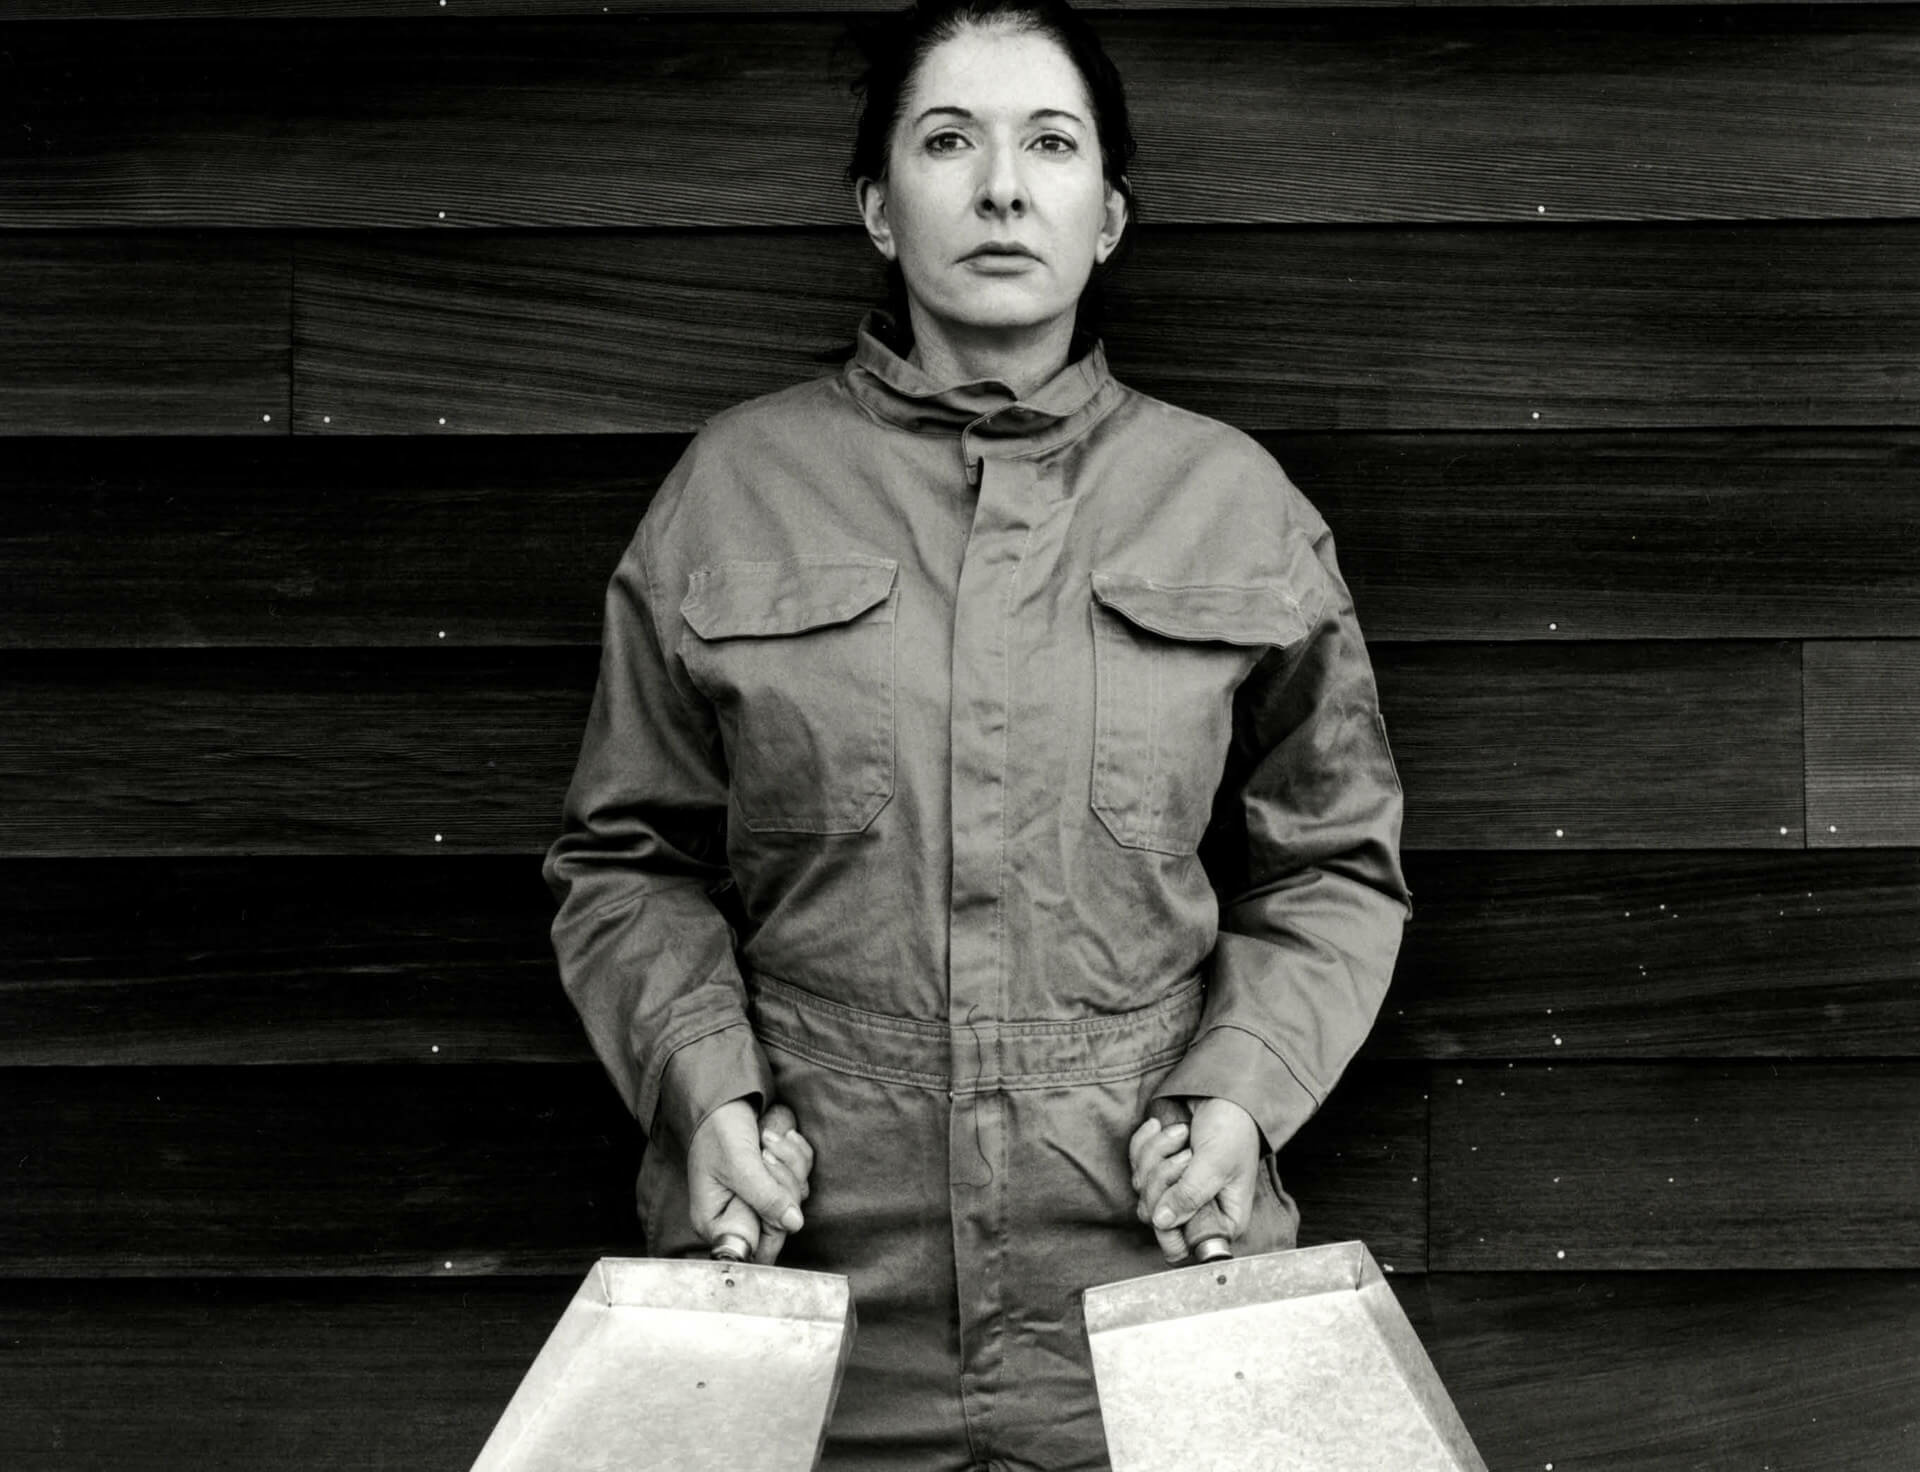 Marina Abramović receives first retrospective in Europe at Moderna Museet